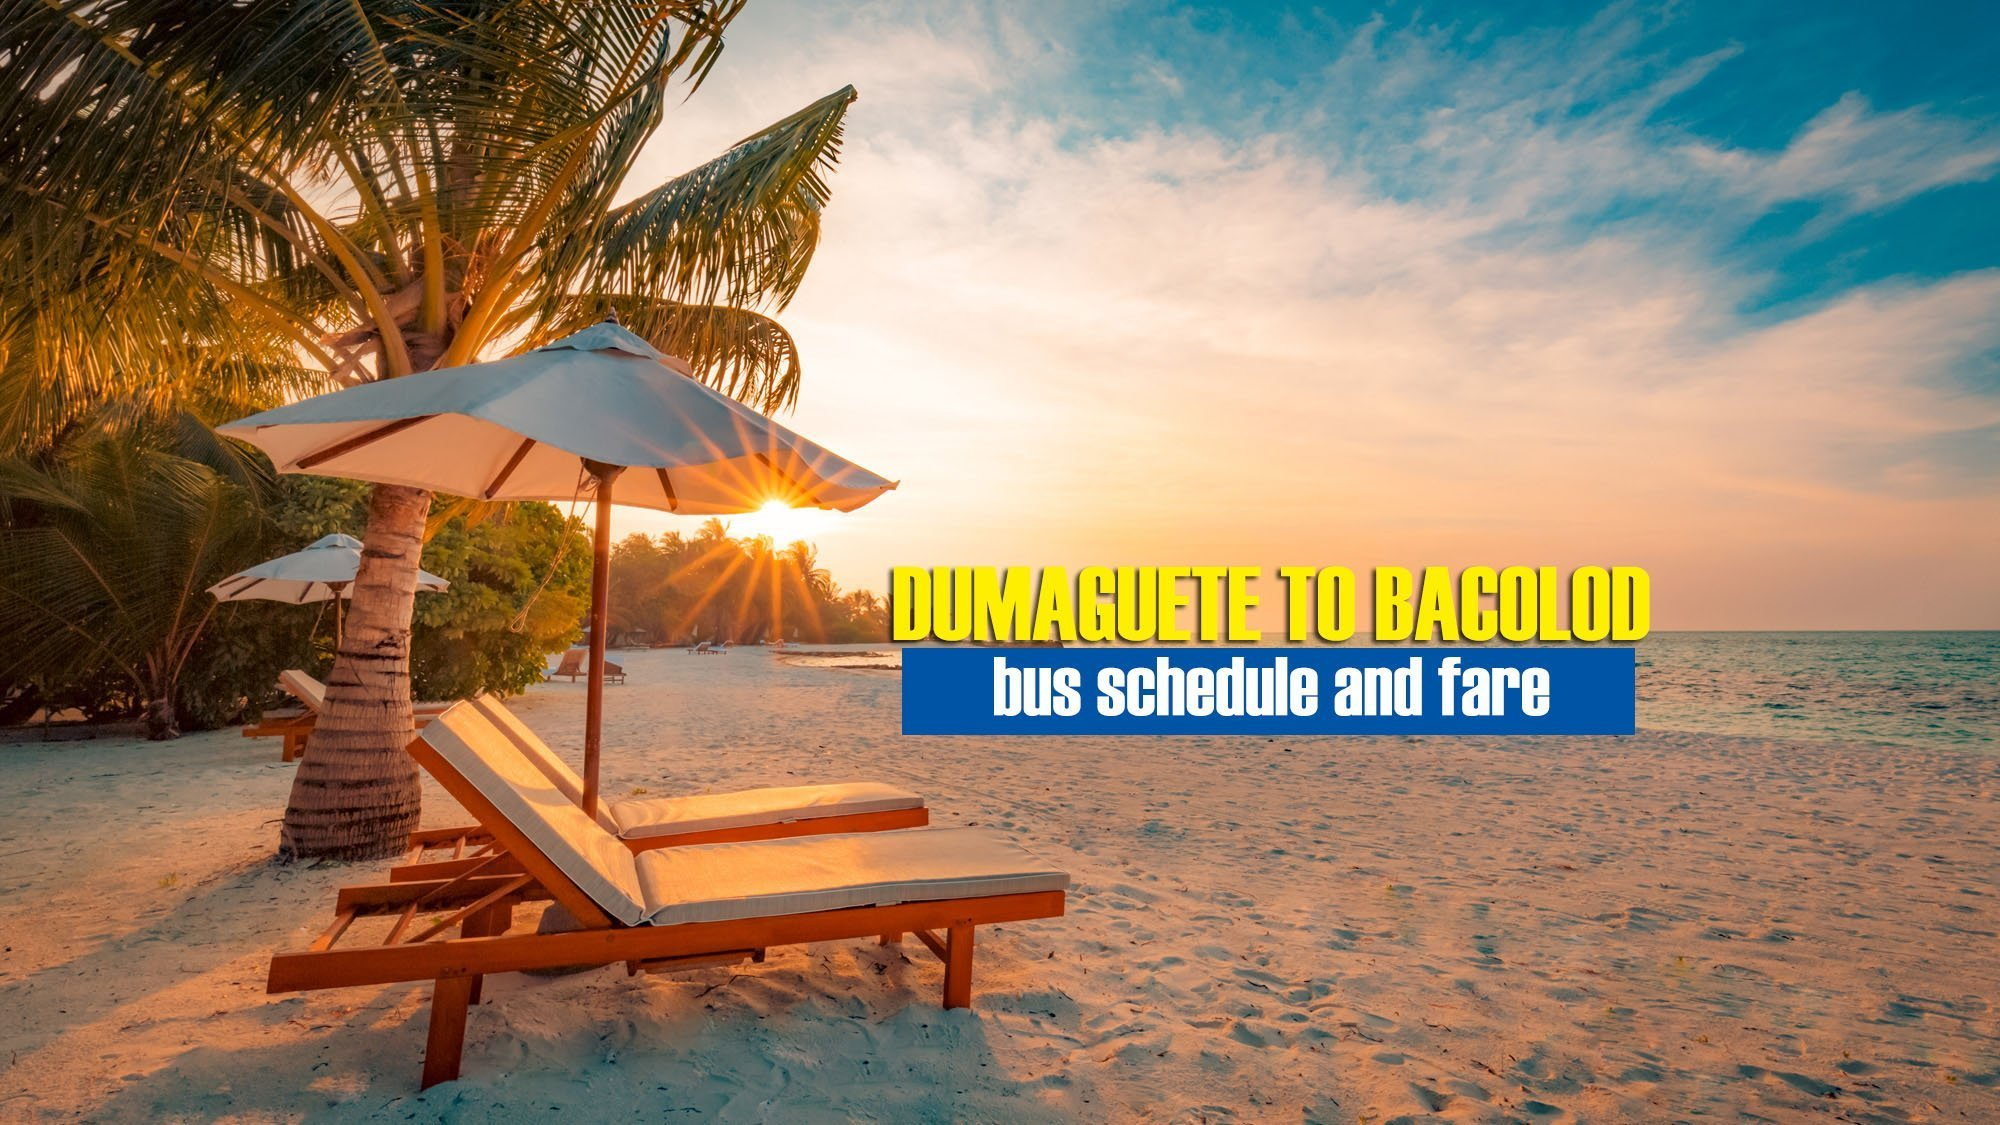 Dumaguete to Bacolod: Bus Schedule & Fare